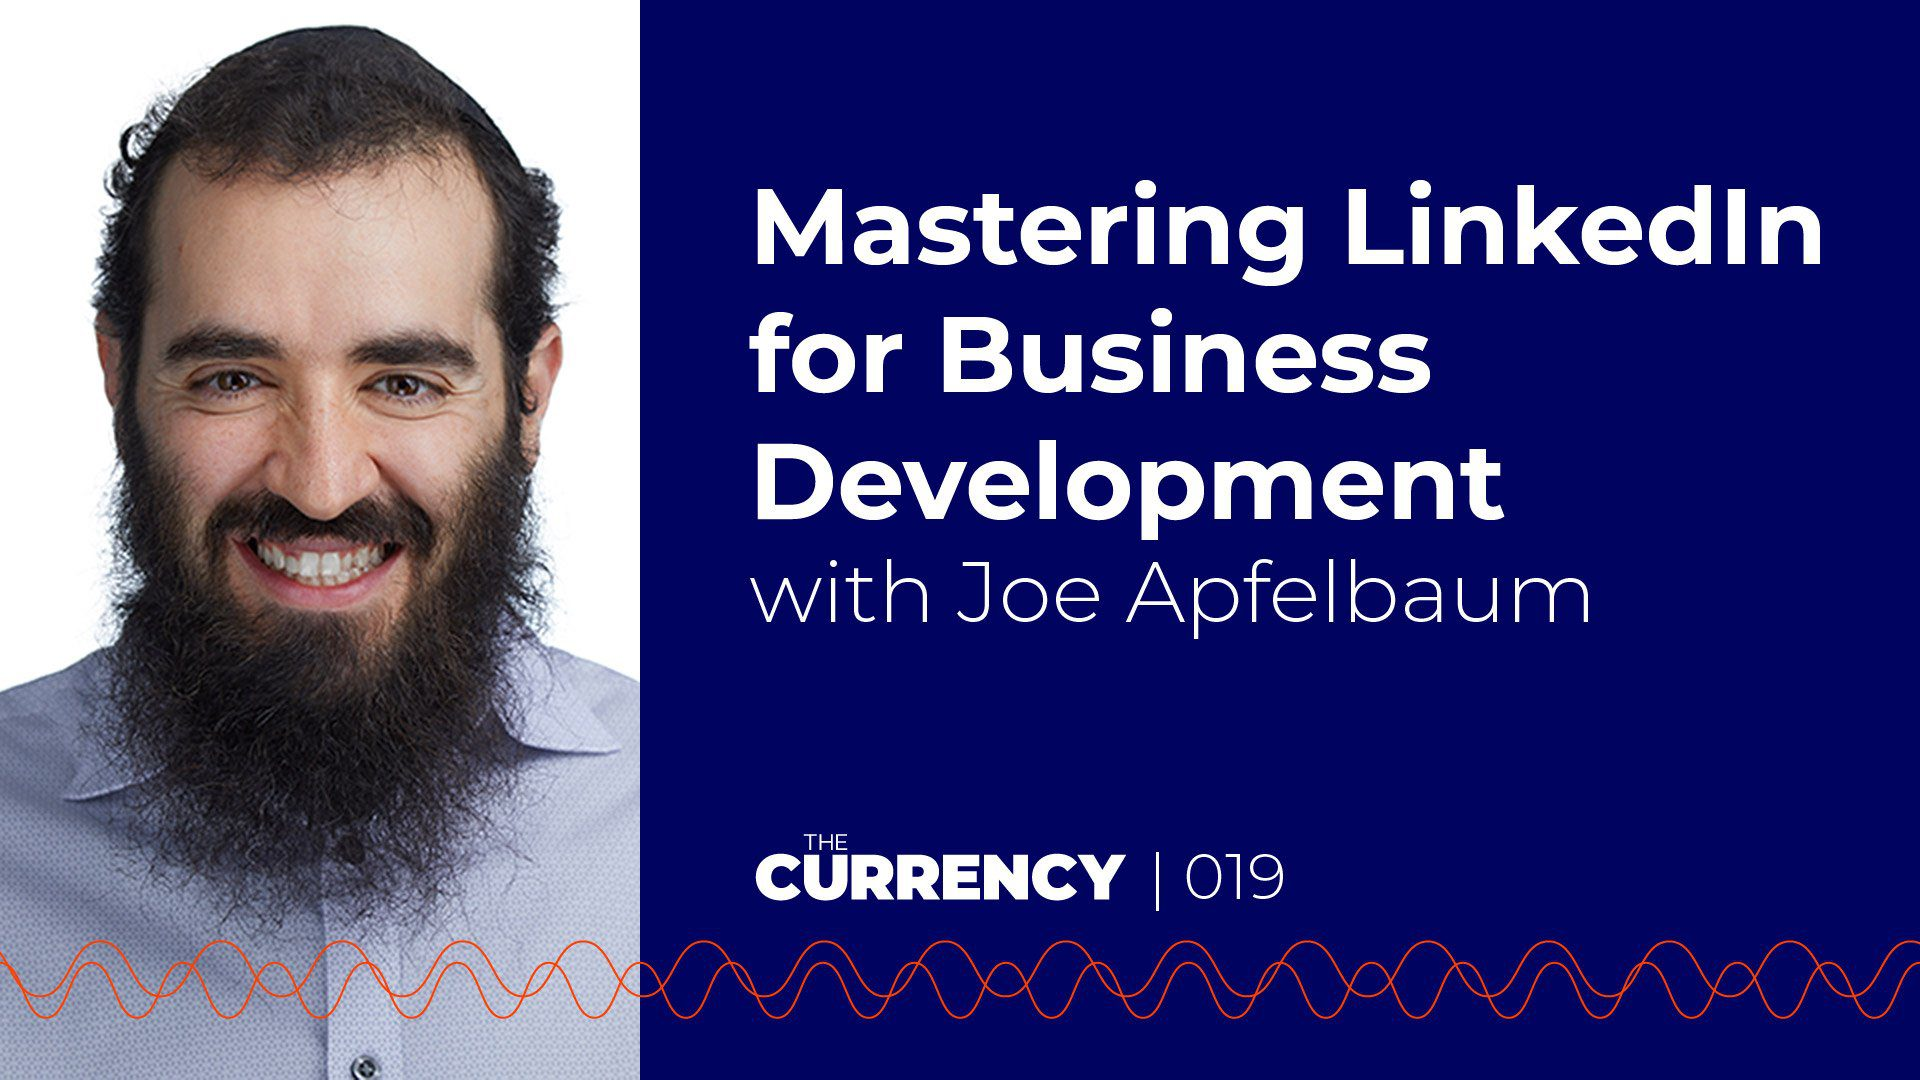 The Currency: [019] Mastering LinkedIn for Business Development with Joe Apfelbaum of Ajax Union